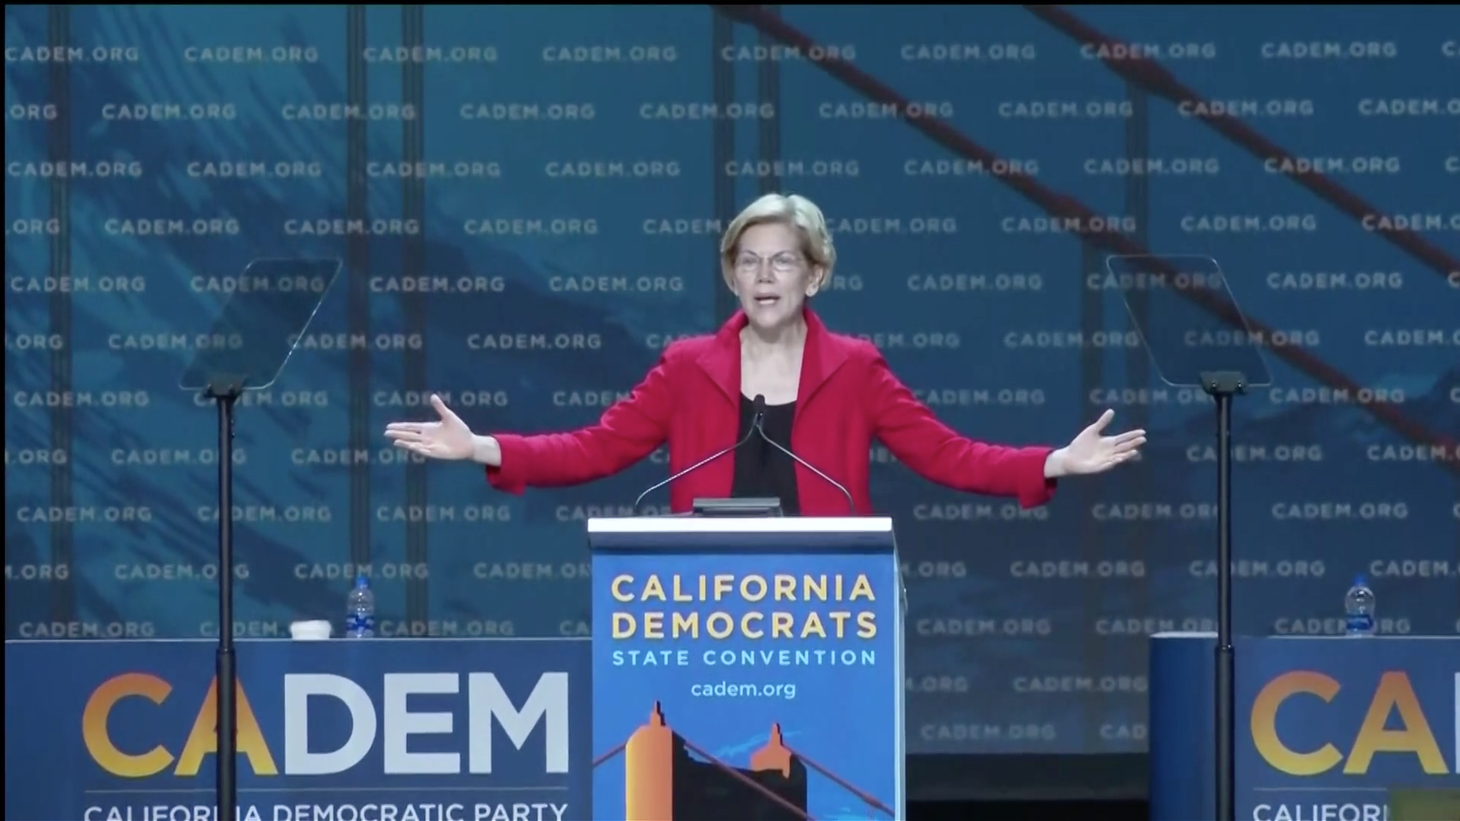 For the first time since 1972, California Democrats are positioned to make a difference. Fourteen candidates showed up for the party convention in San Francisco. When will they be back again?